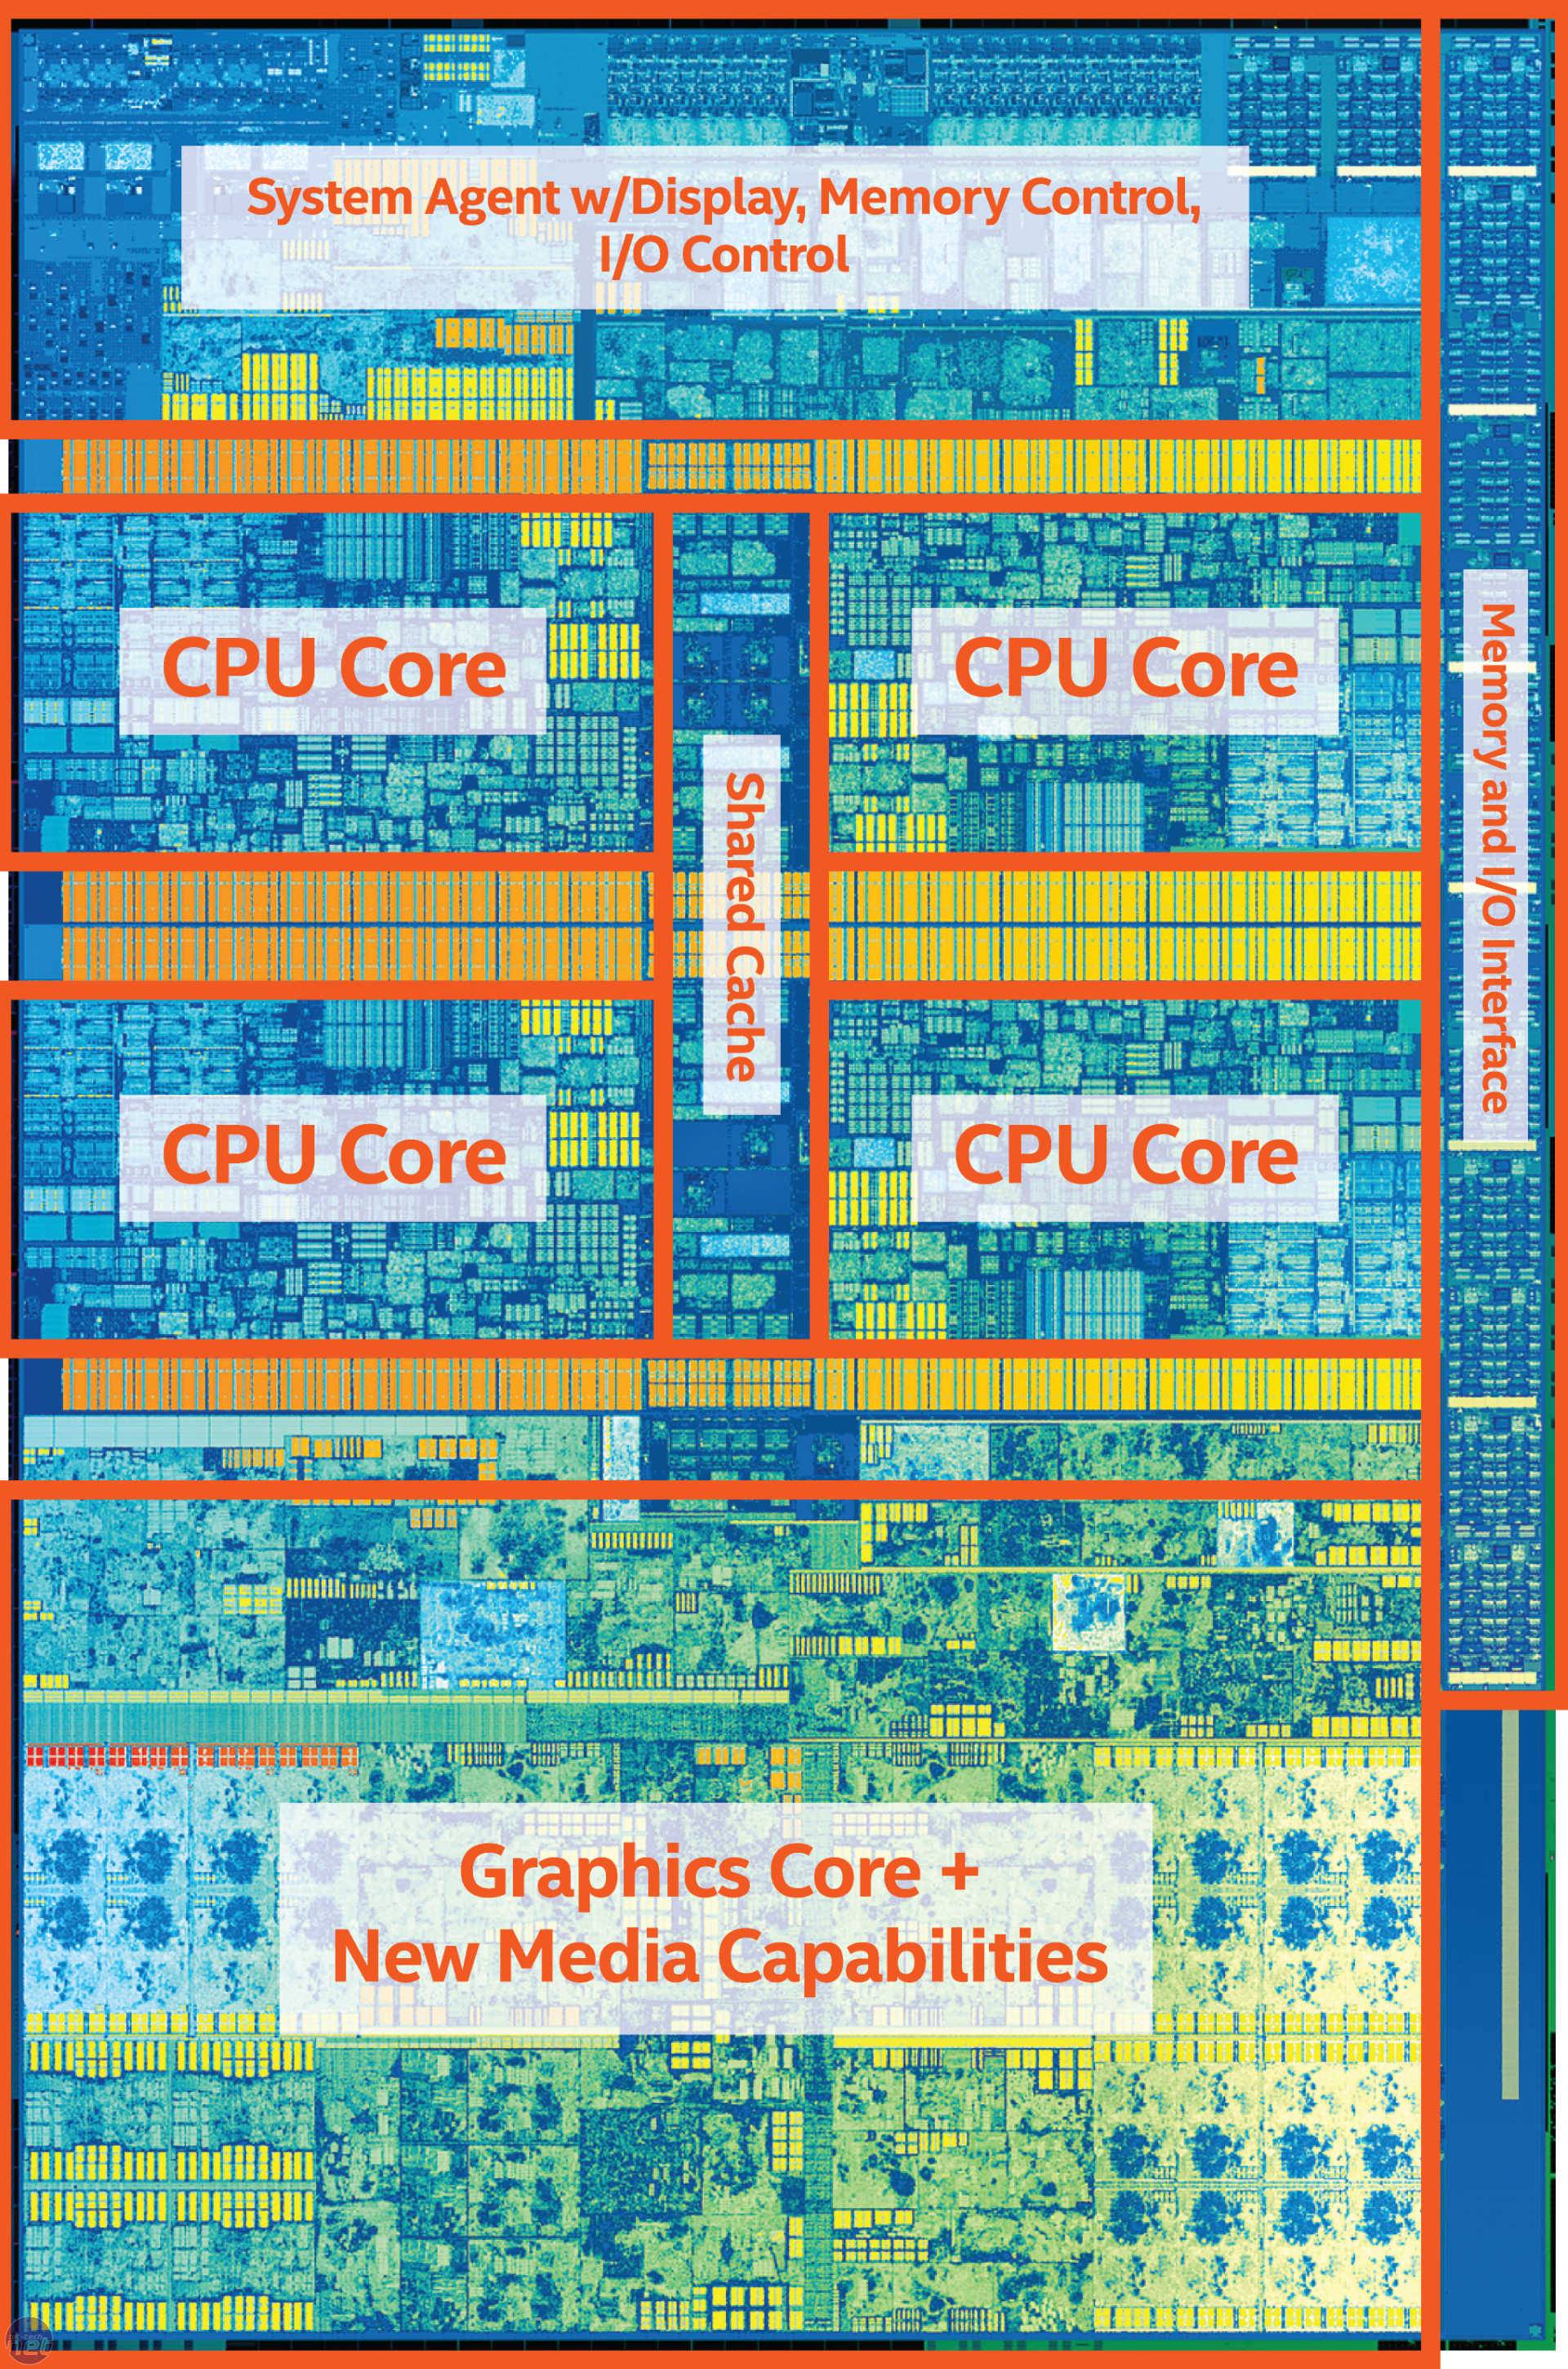 What would be the best CPU for a new pc build?